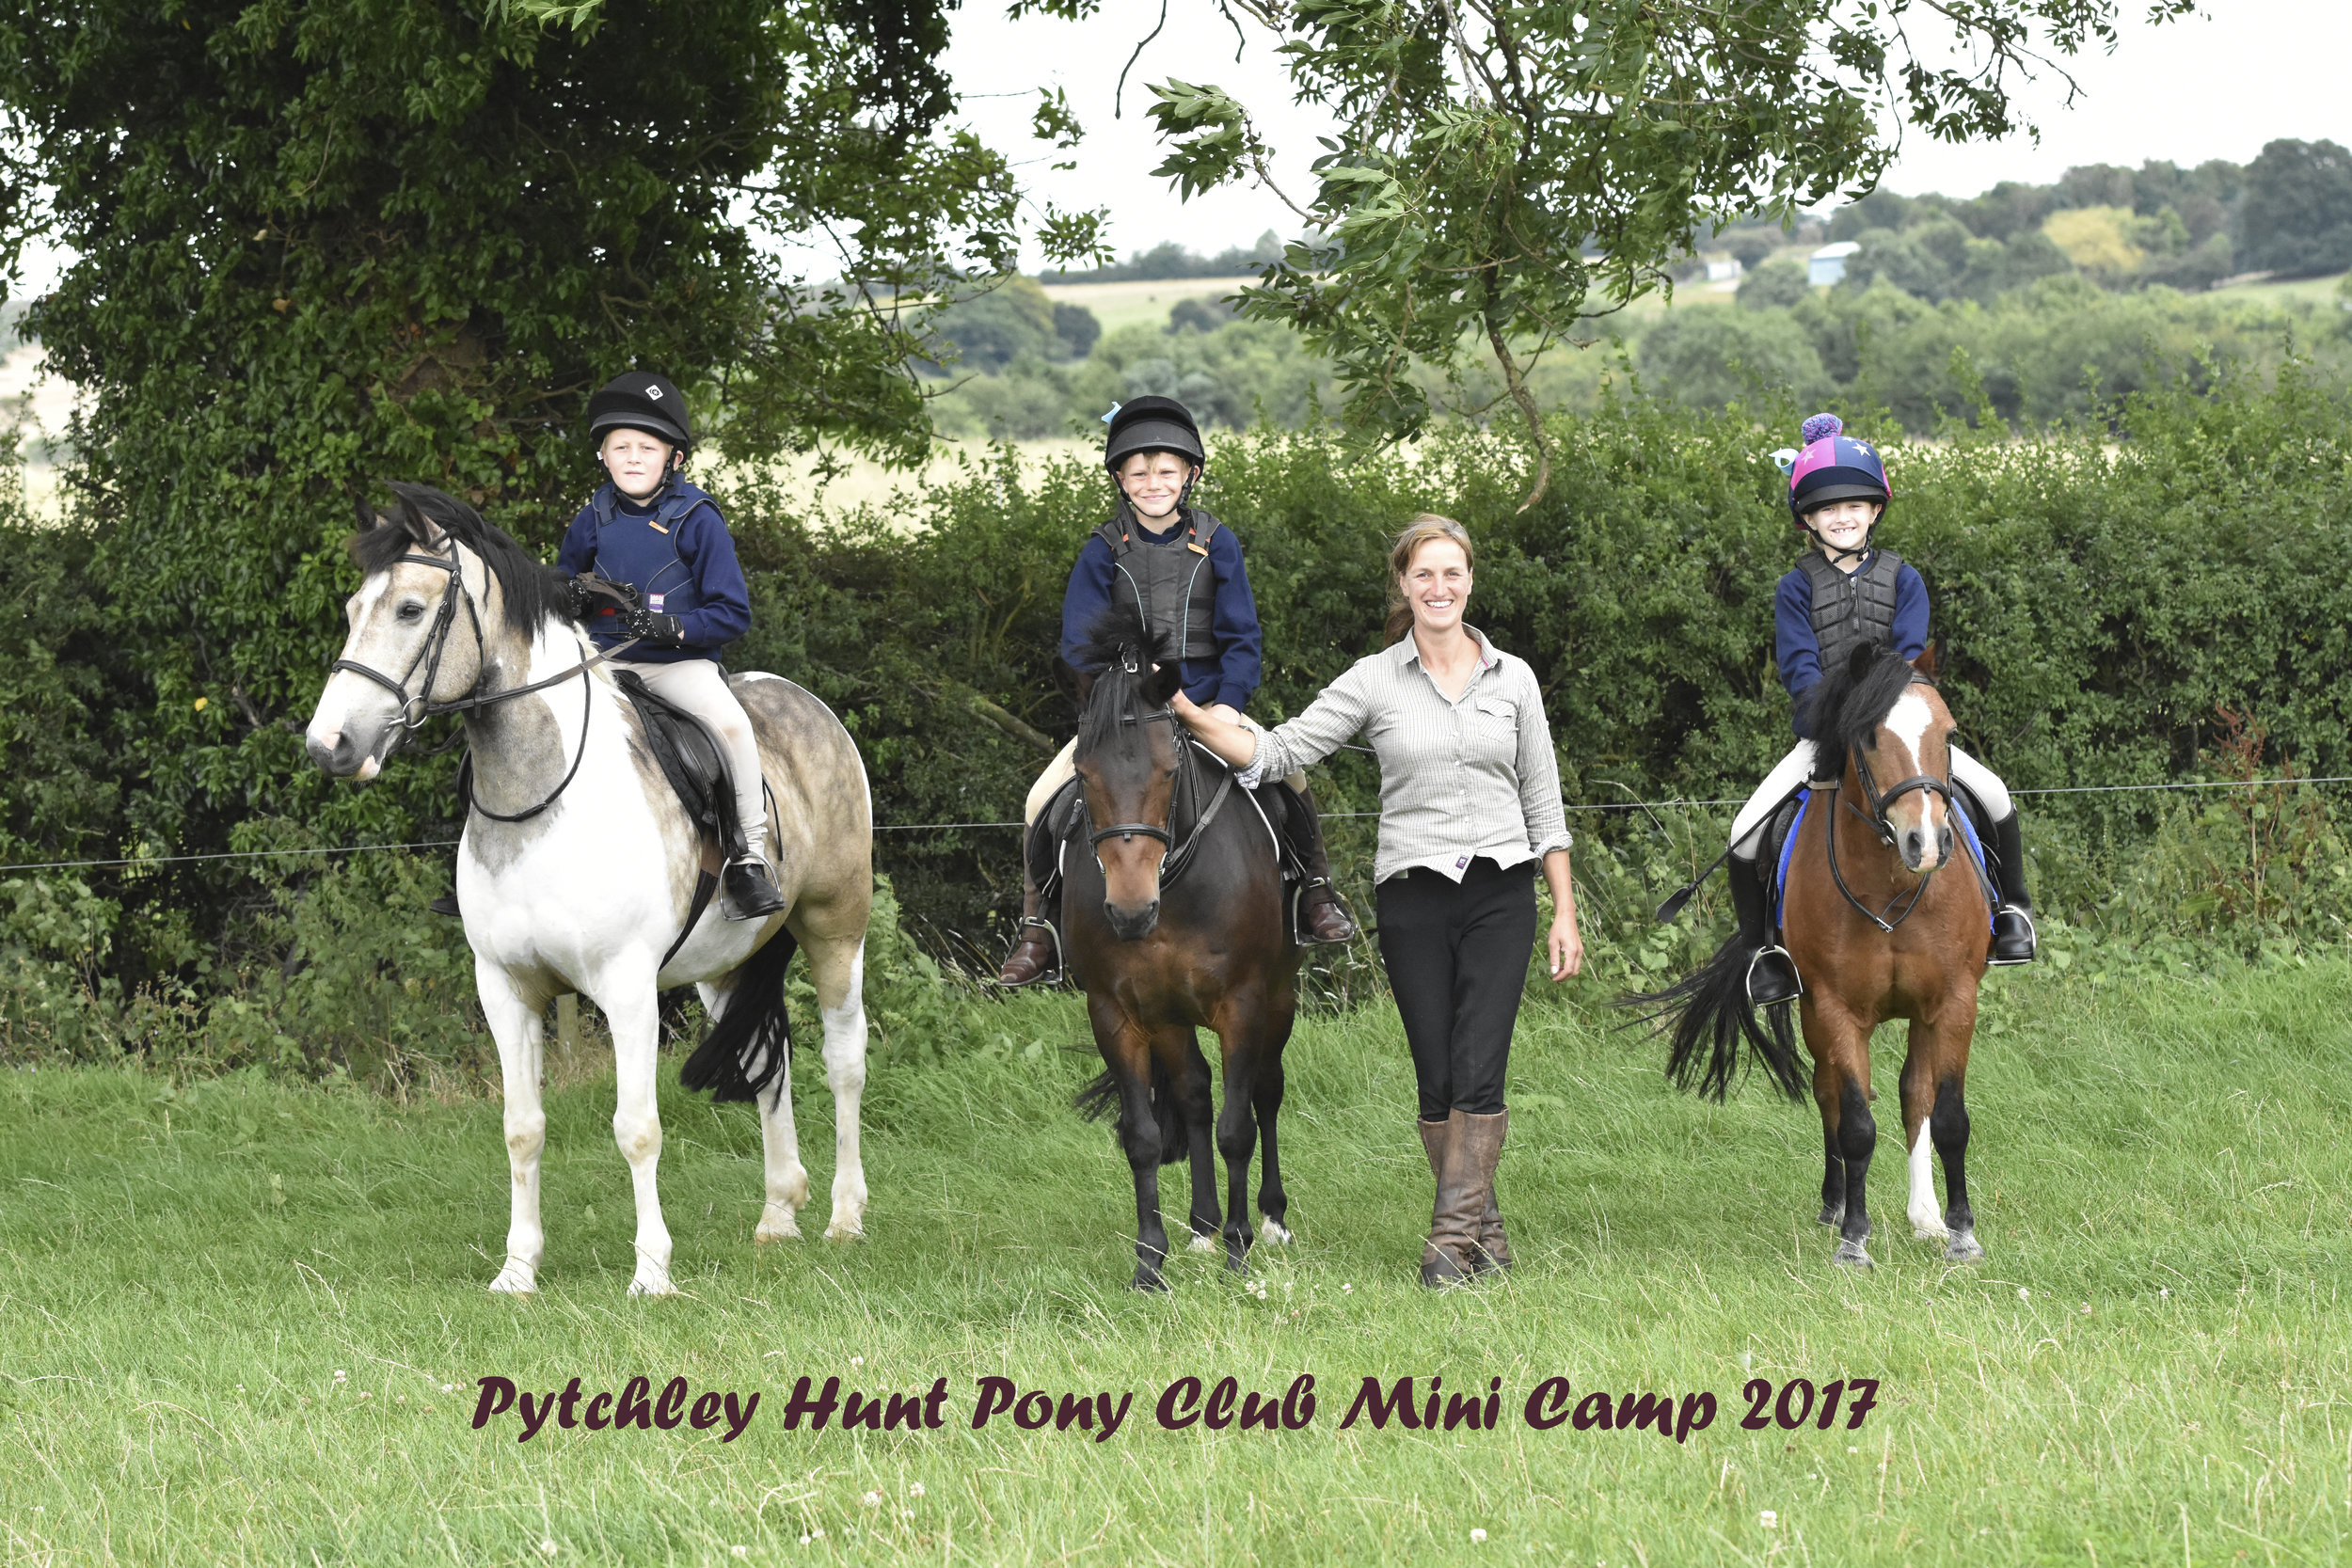 Pytchley Hunt Mini Camp 2017